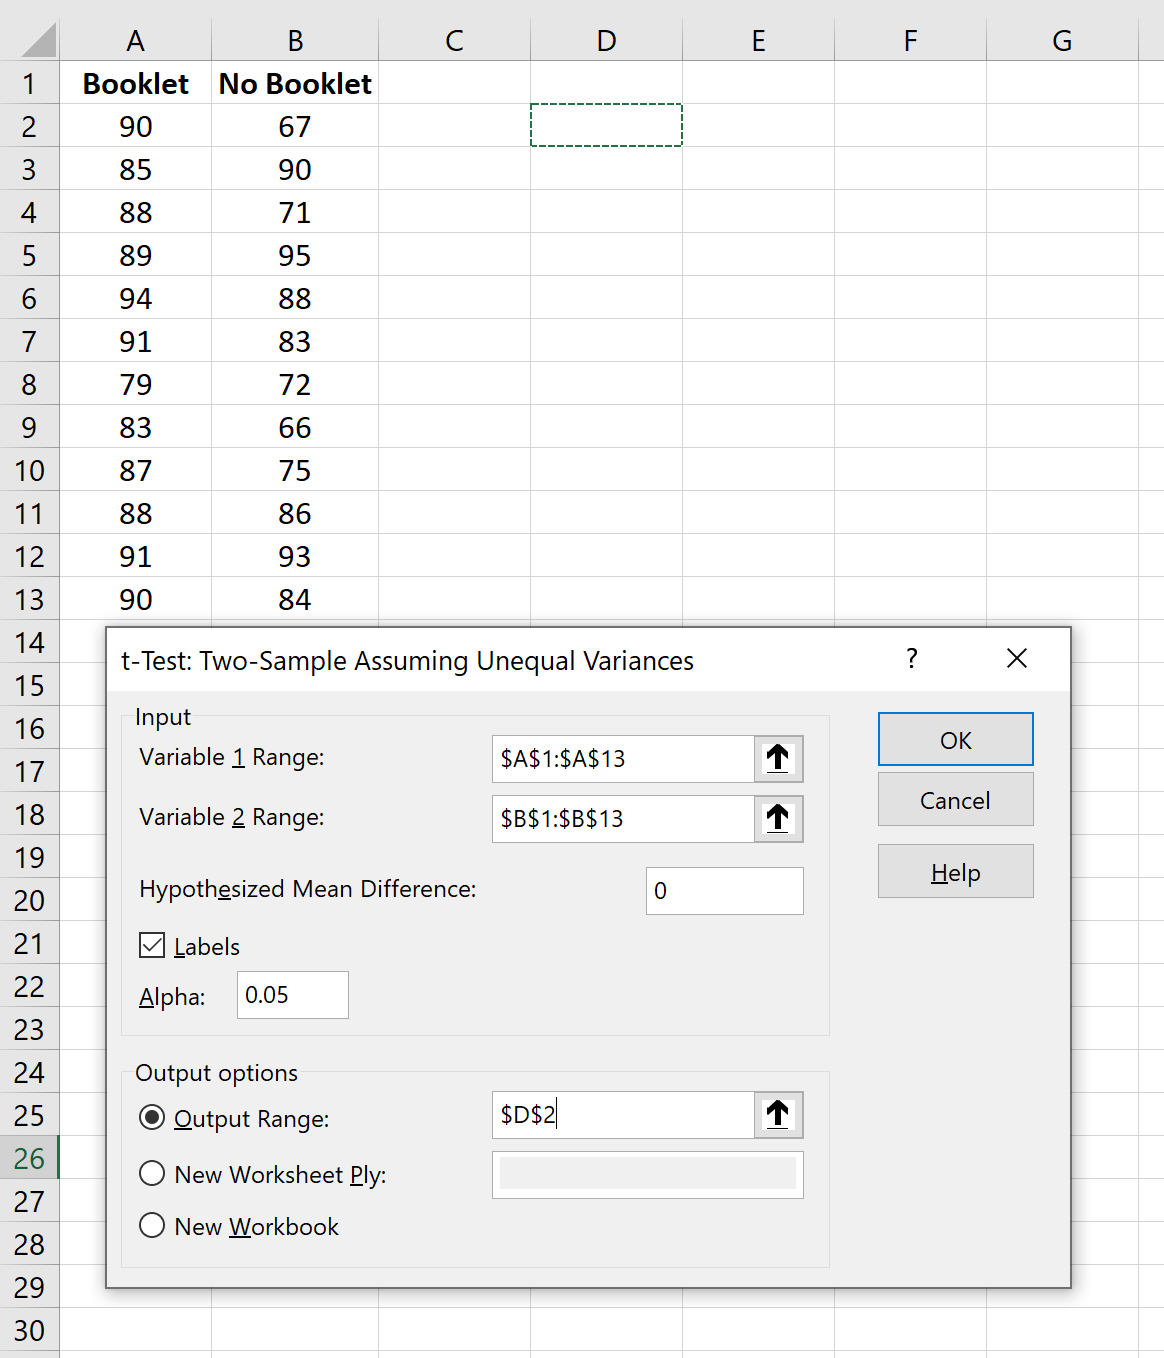 Welch's t-test in Excel example